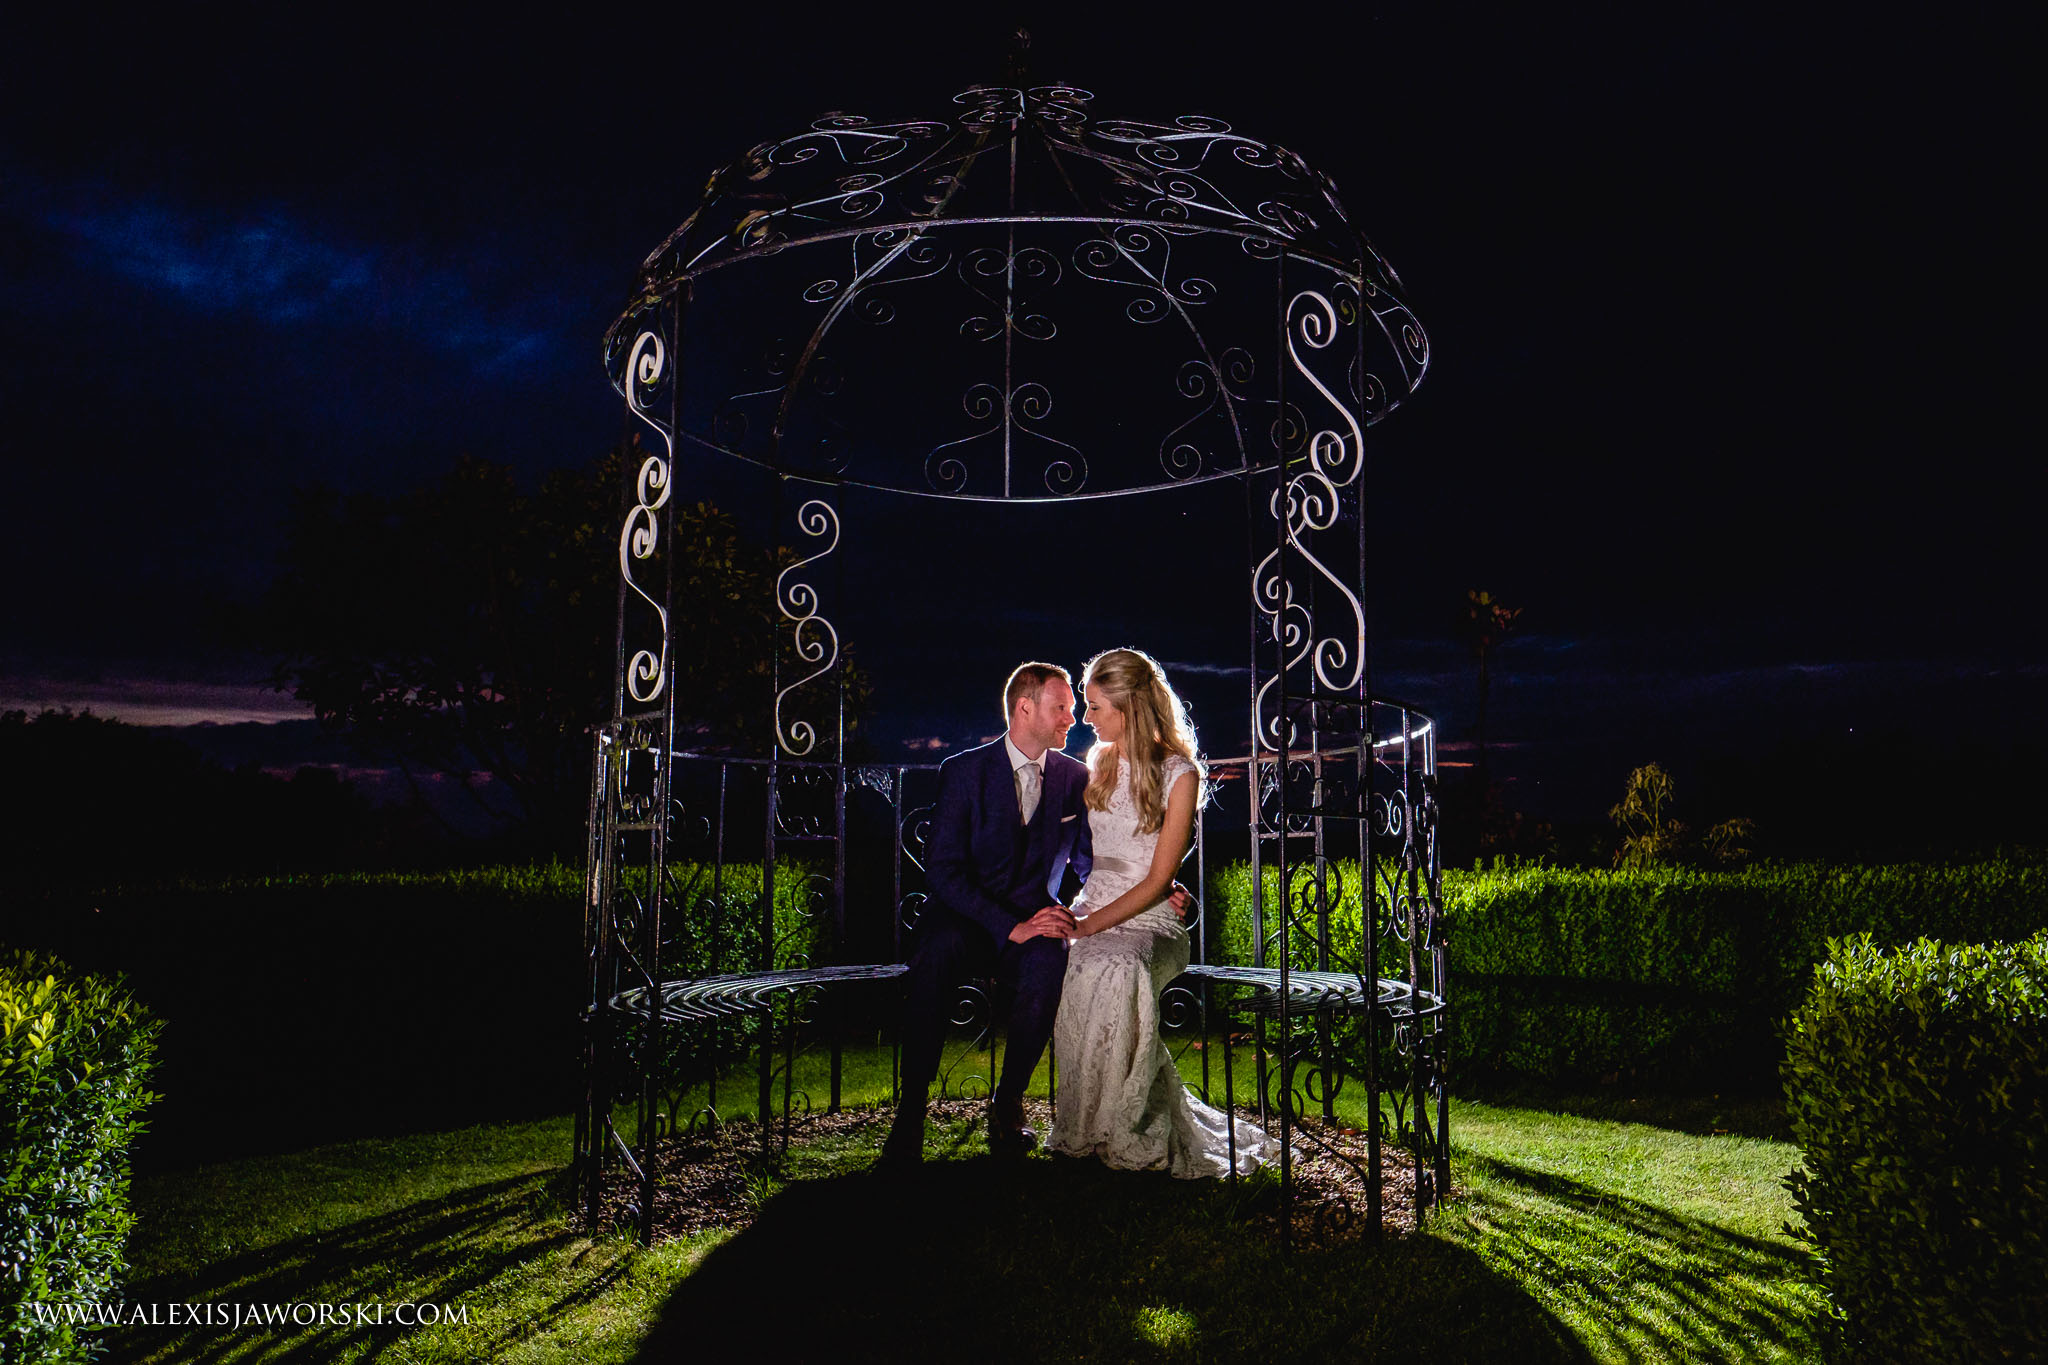 Night portrait of bride and groom